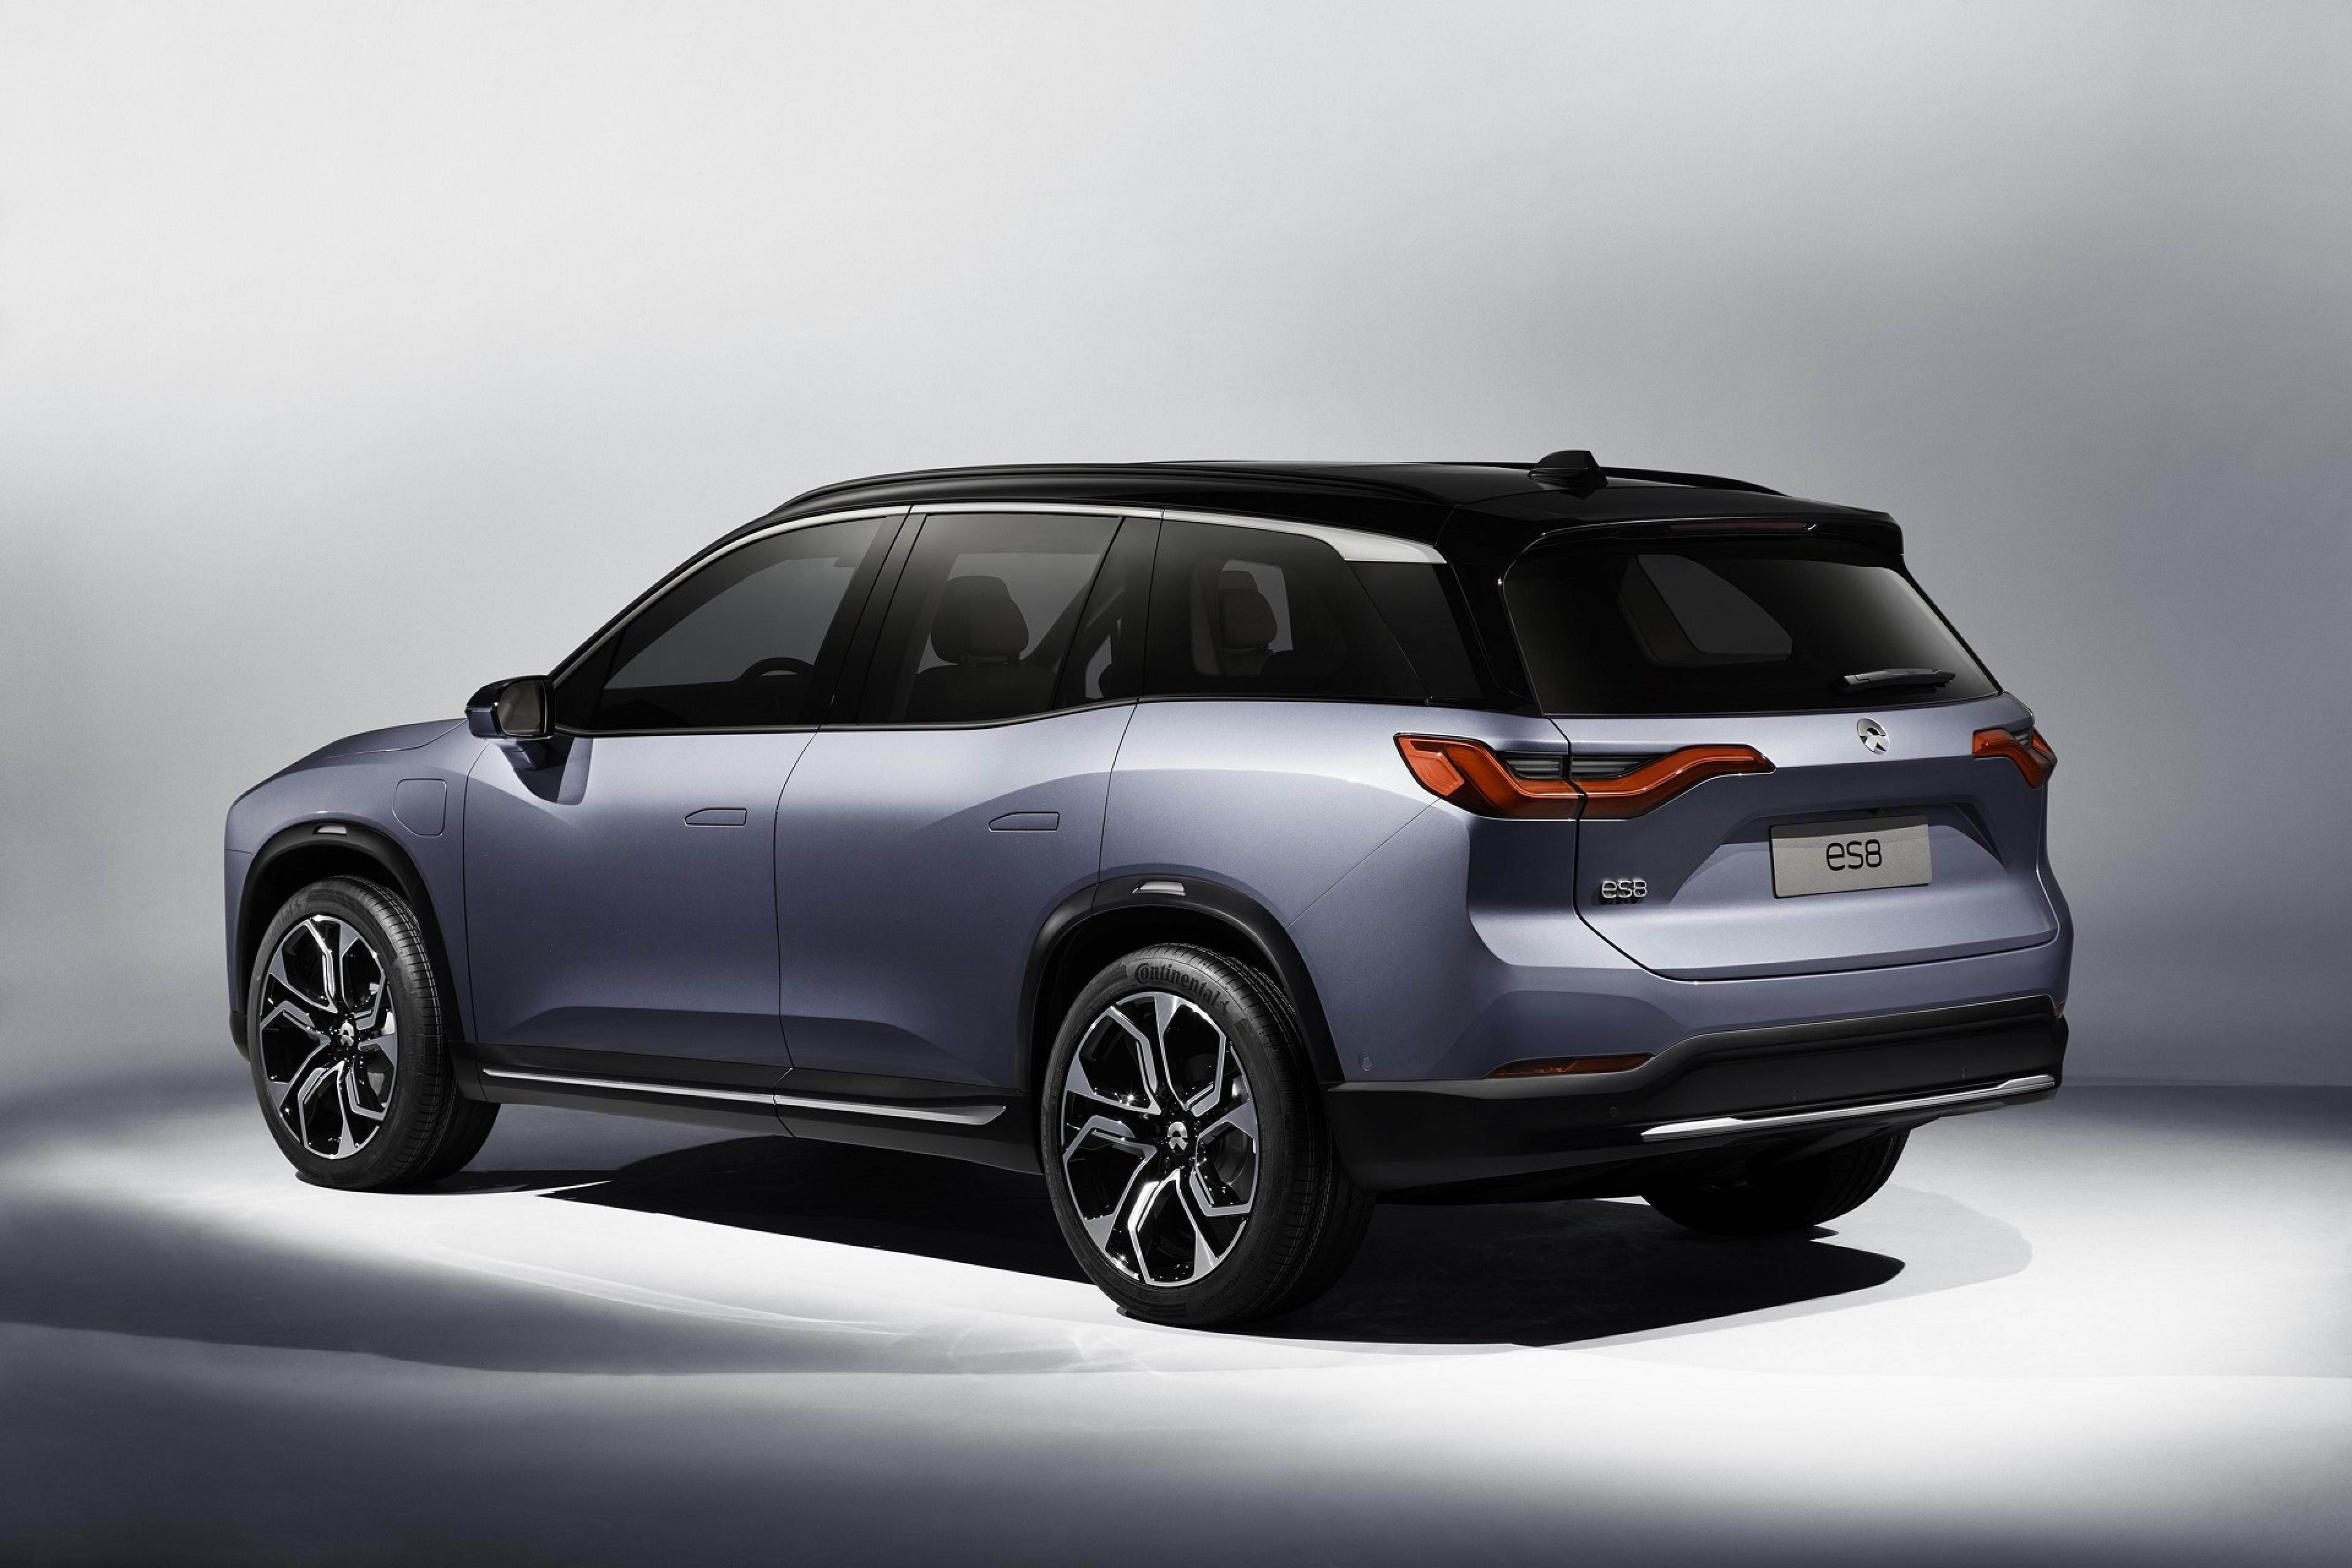 With Regard To The New Es8 Electric Suv It S A Full Size 7 Seater Wheelbase Of 118 Inches And Body Length 196